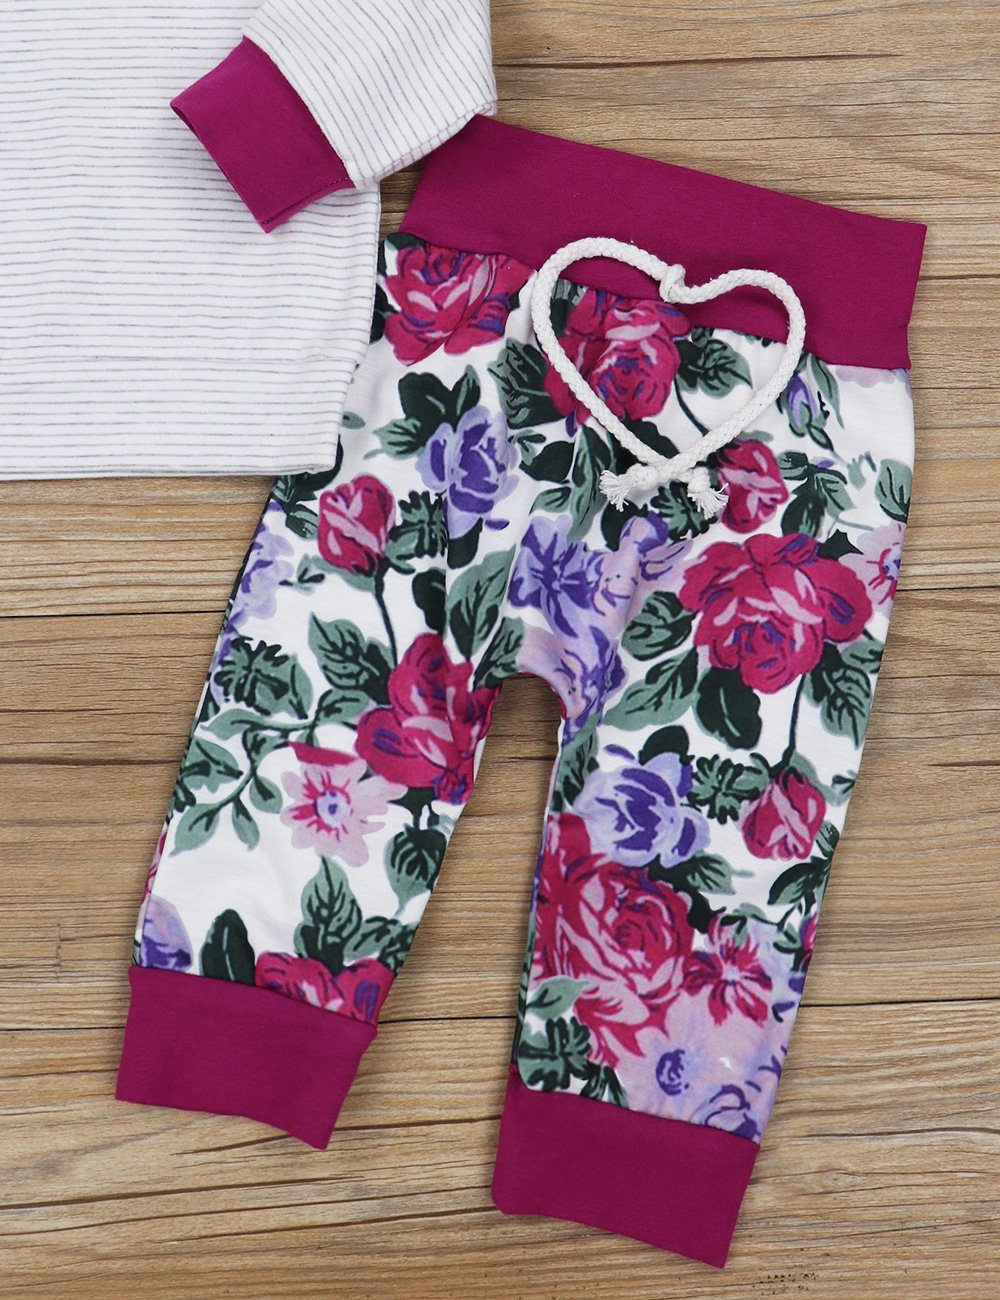 Baby Girls Long Sleeve Flowers Hoodie Tops and Pants Outfit with Kangaroo Pocket Headband (0-6 Months) by Oklady (Image #6)